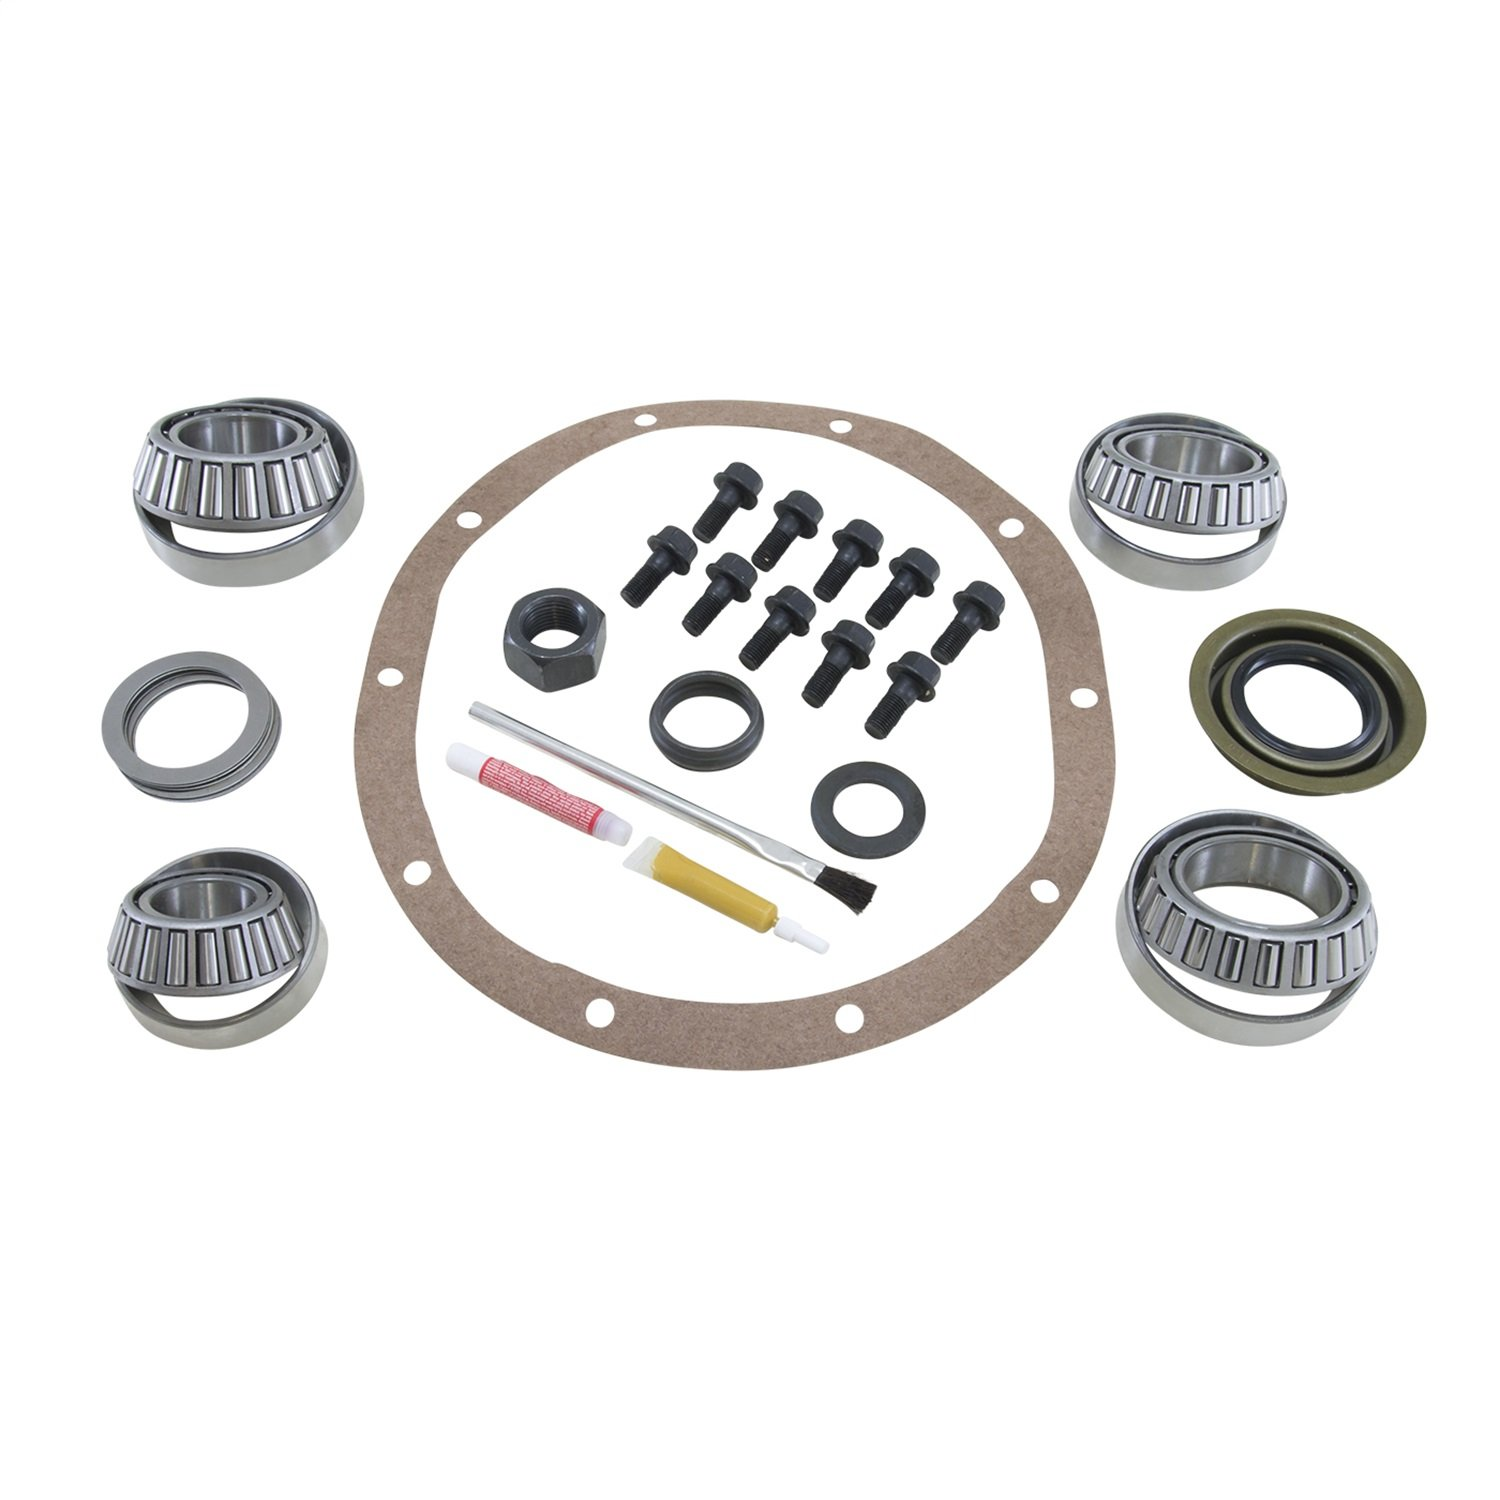 USA Standard Gear (ZK C8.25-B) Master Overhaul Kit for Chrysler 8.25' Differential